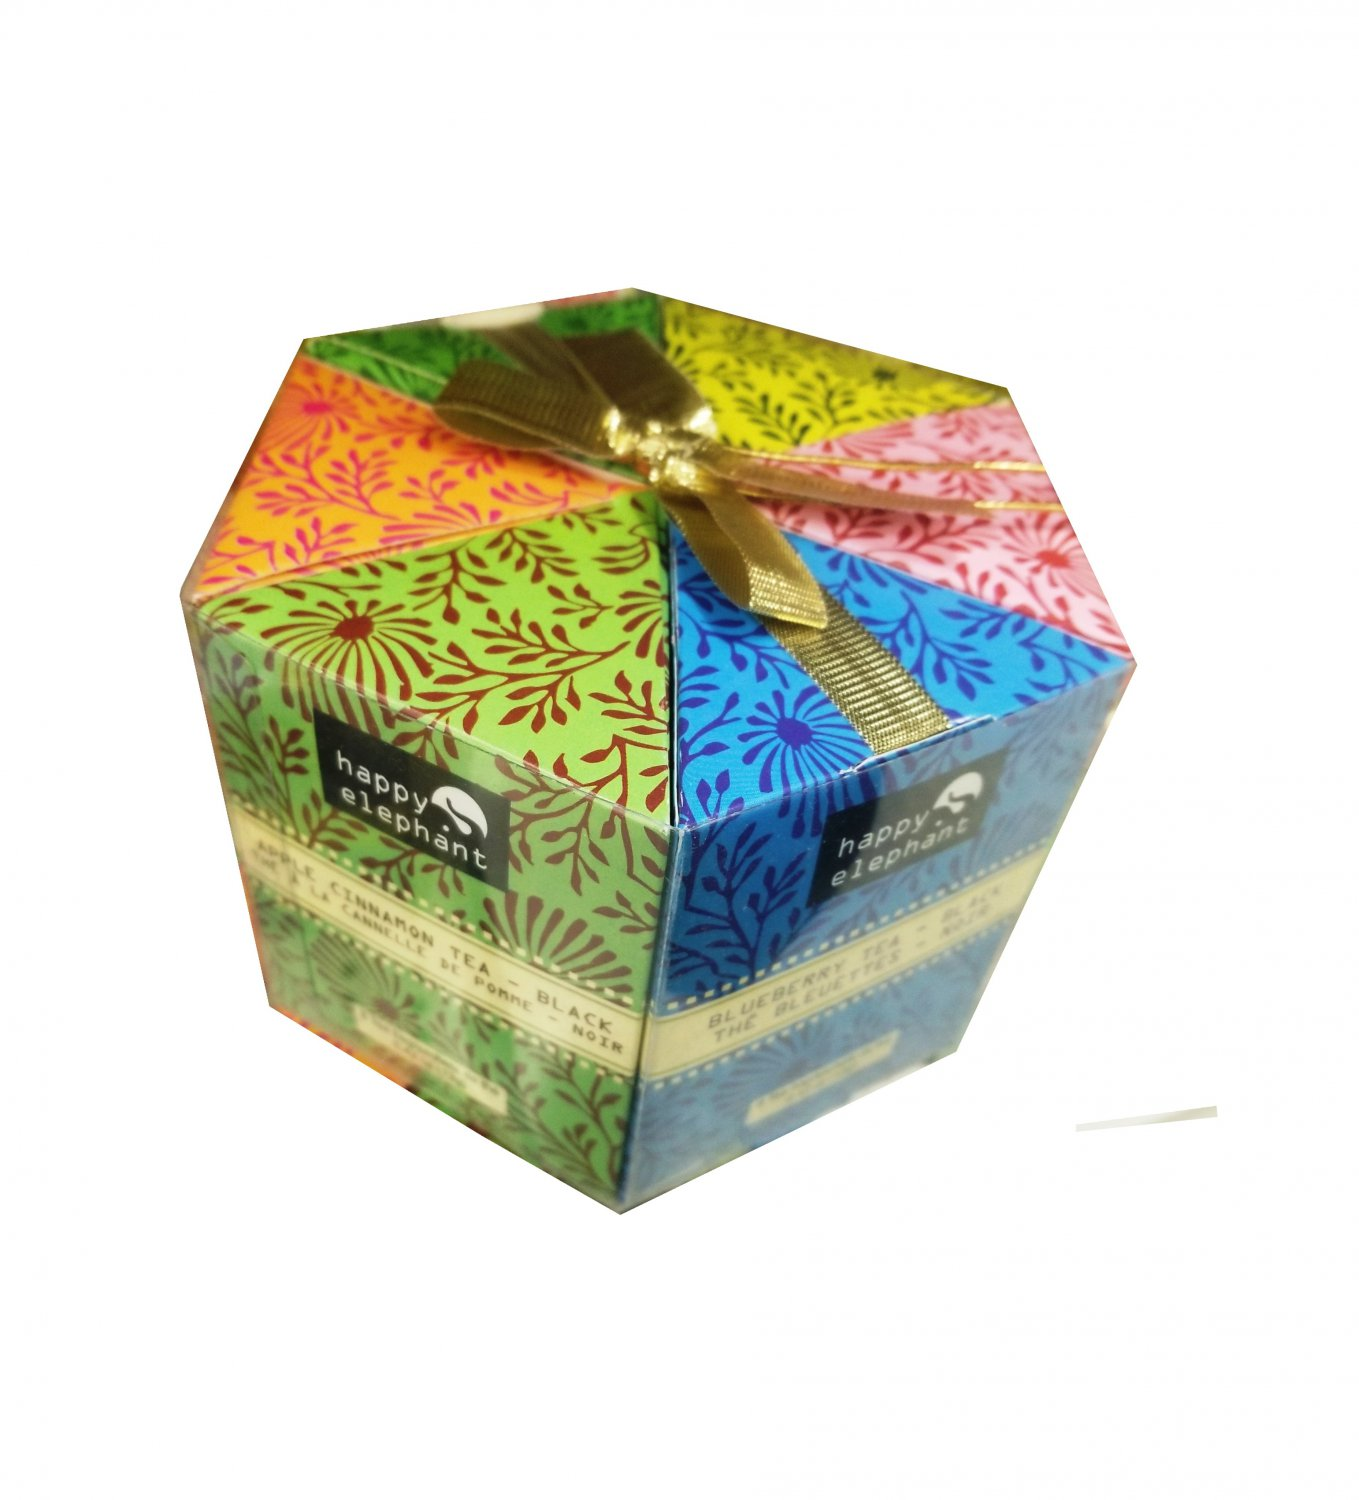 Specialty Tea Selection Happy Elephant Gift Box 48 tea bags - 6 flavors New Gift Idea